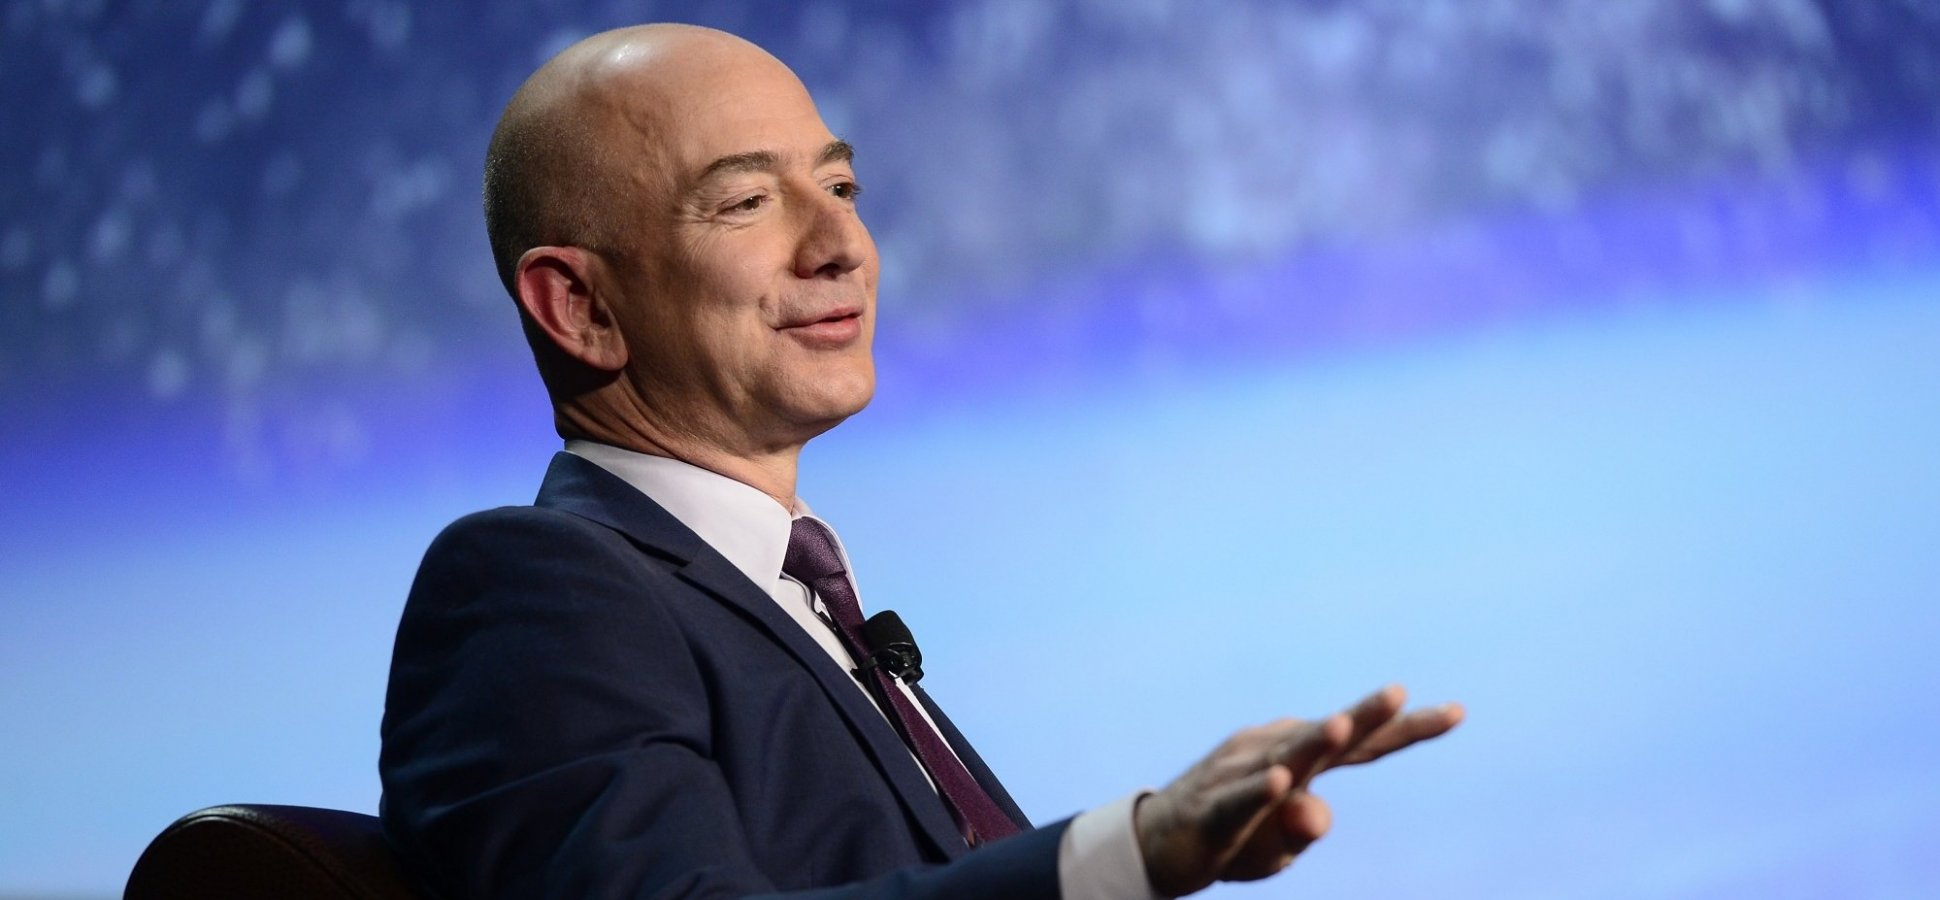 Jeff Bezos Says Any Good Business Opportunity Has These 4 Qualities